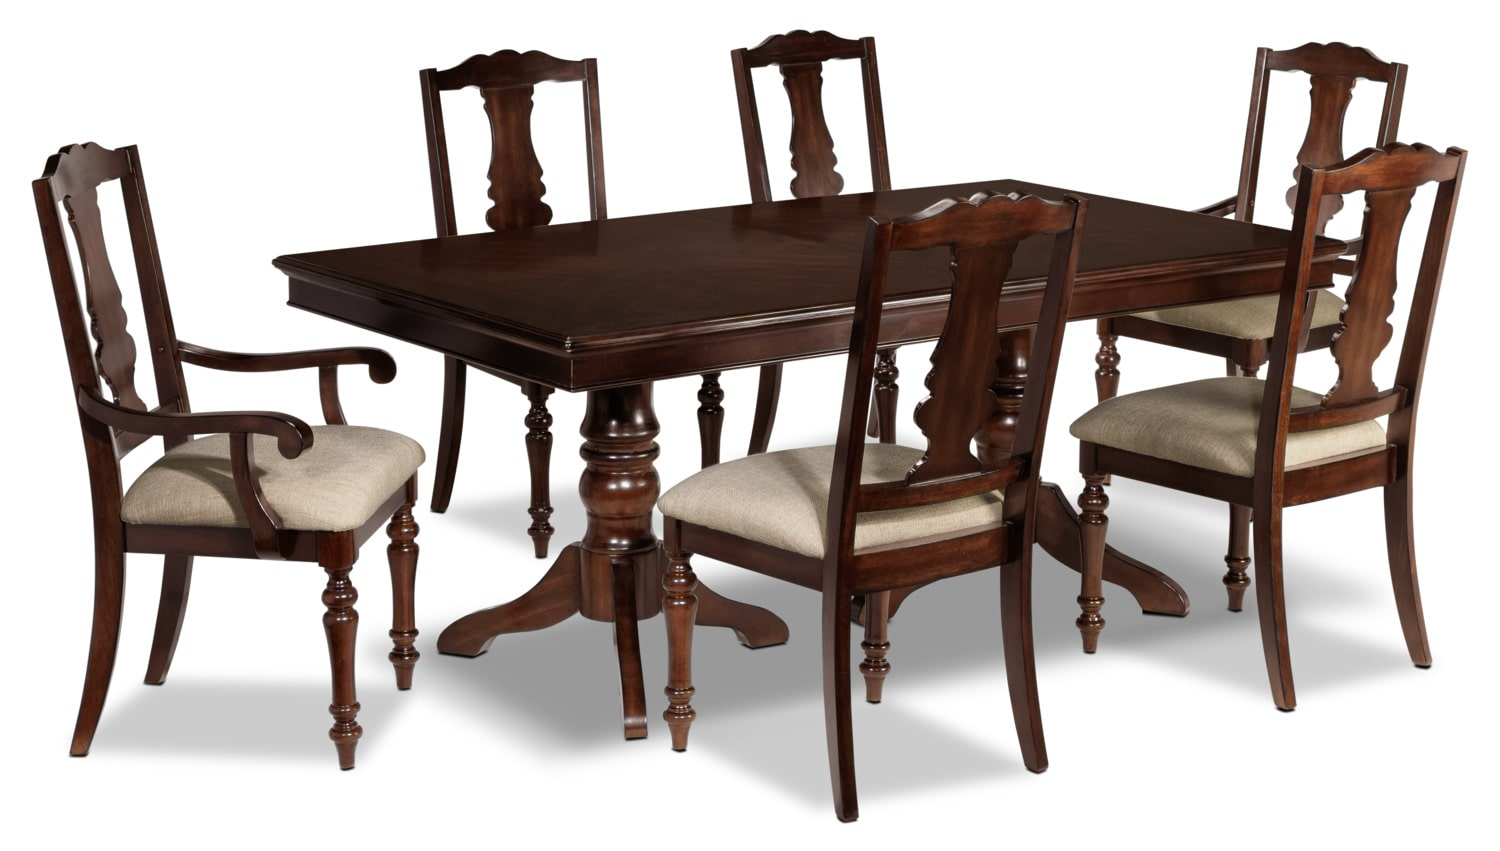 Alice 7 Piece Dining Room Set